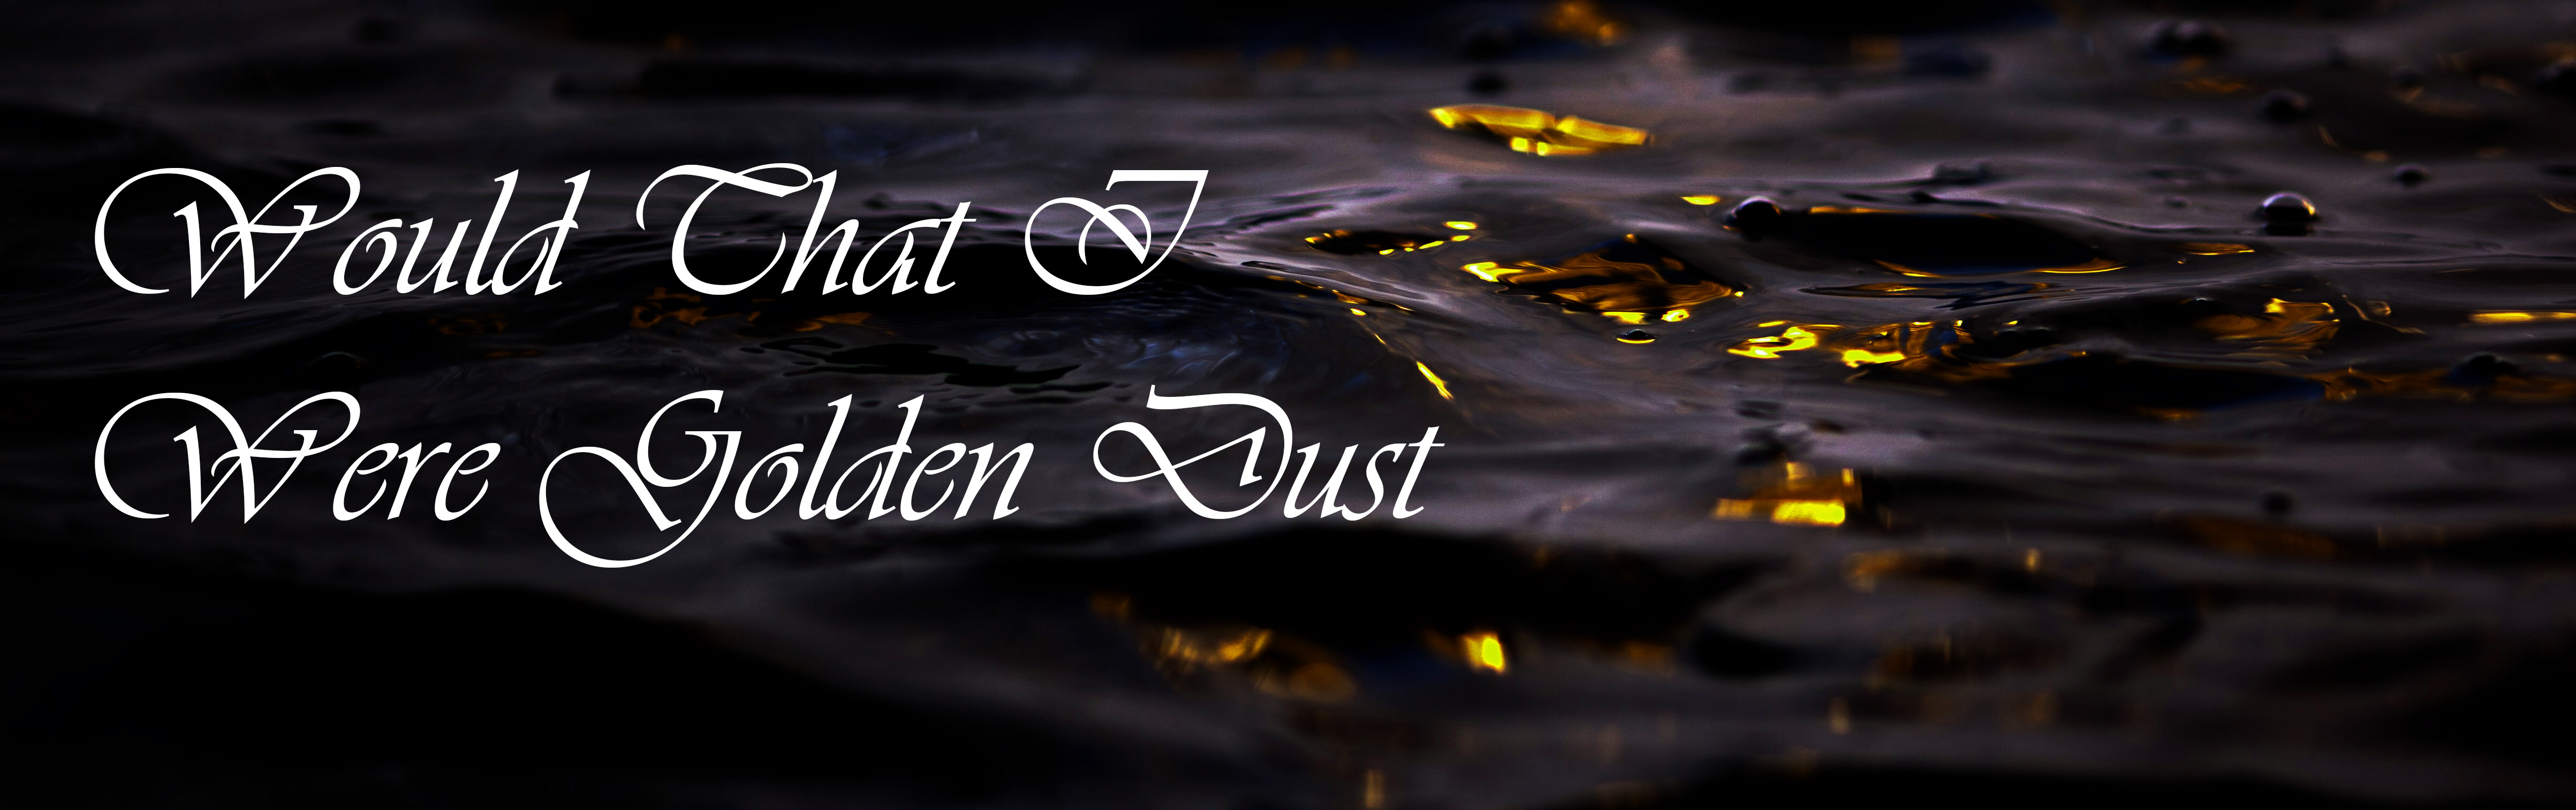 """[IMAGE ID: A dark body of water that's lit from beneath, with golden glitter just beneath the surface. The text in white Vivaldi font reads """"Would That I Were Golden Dust."""" END ID]"""